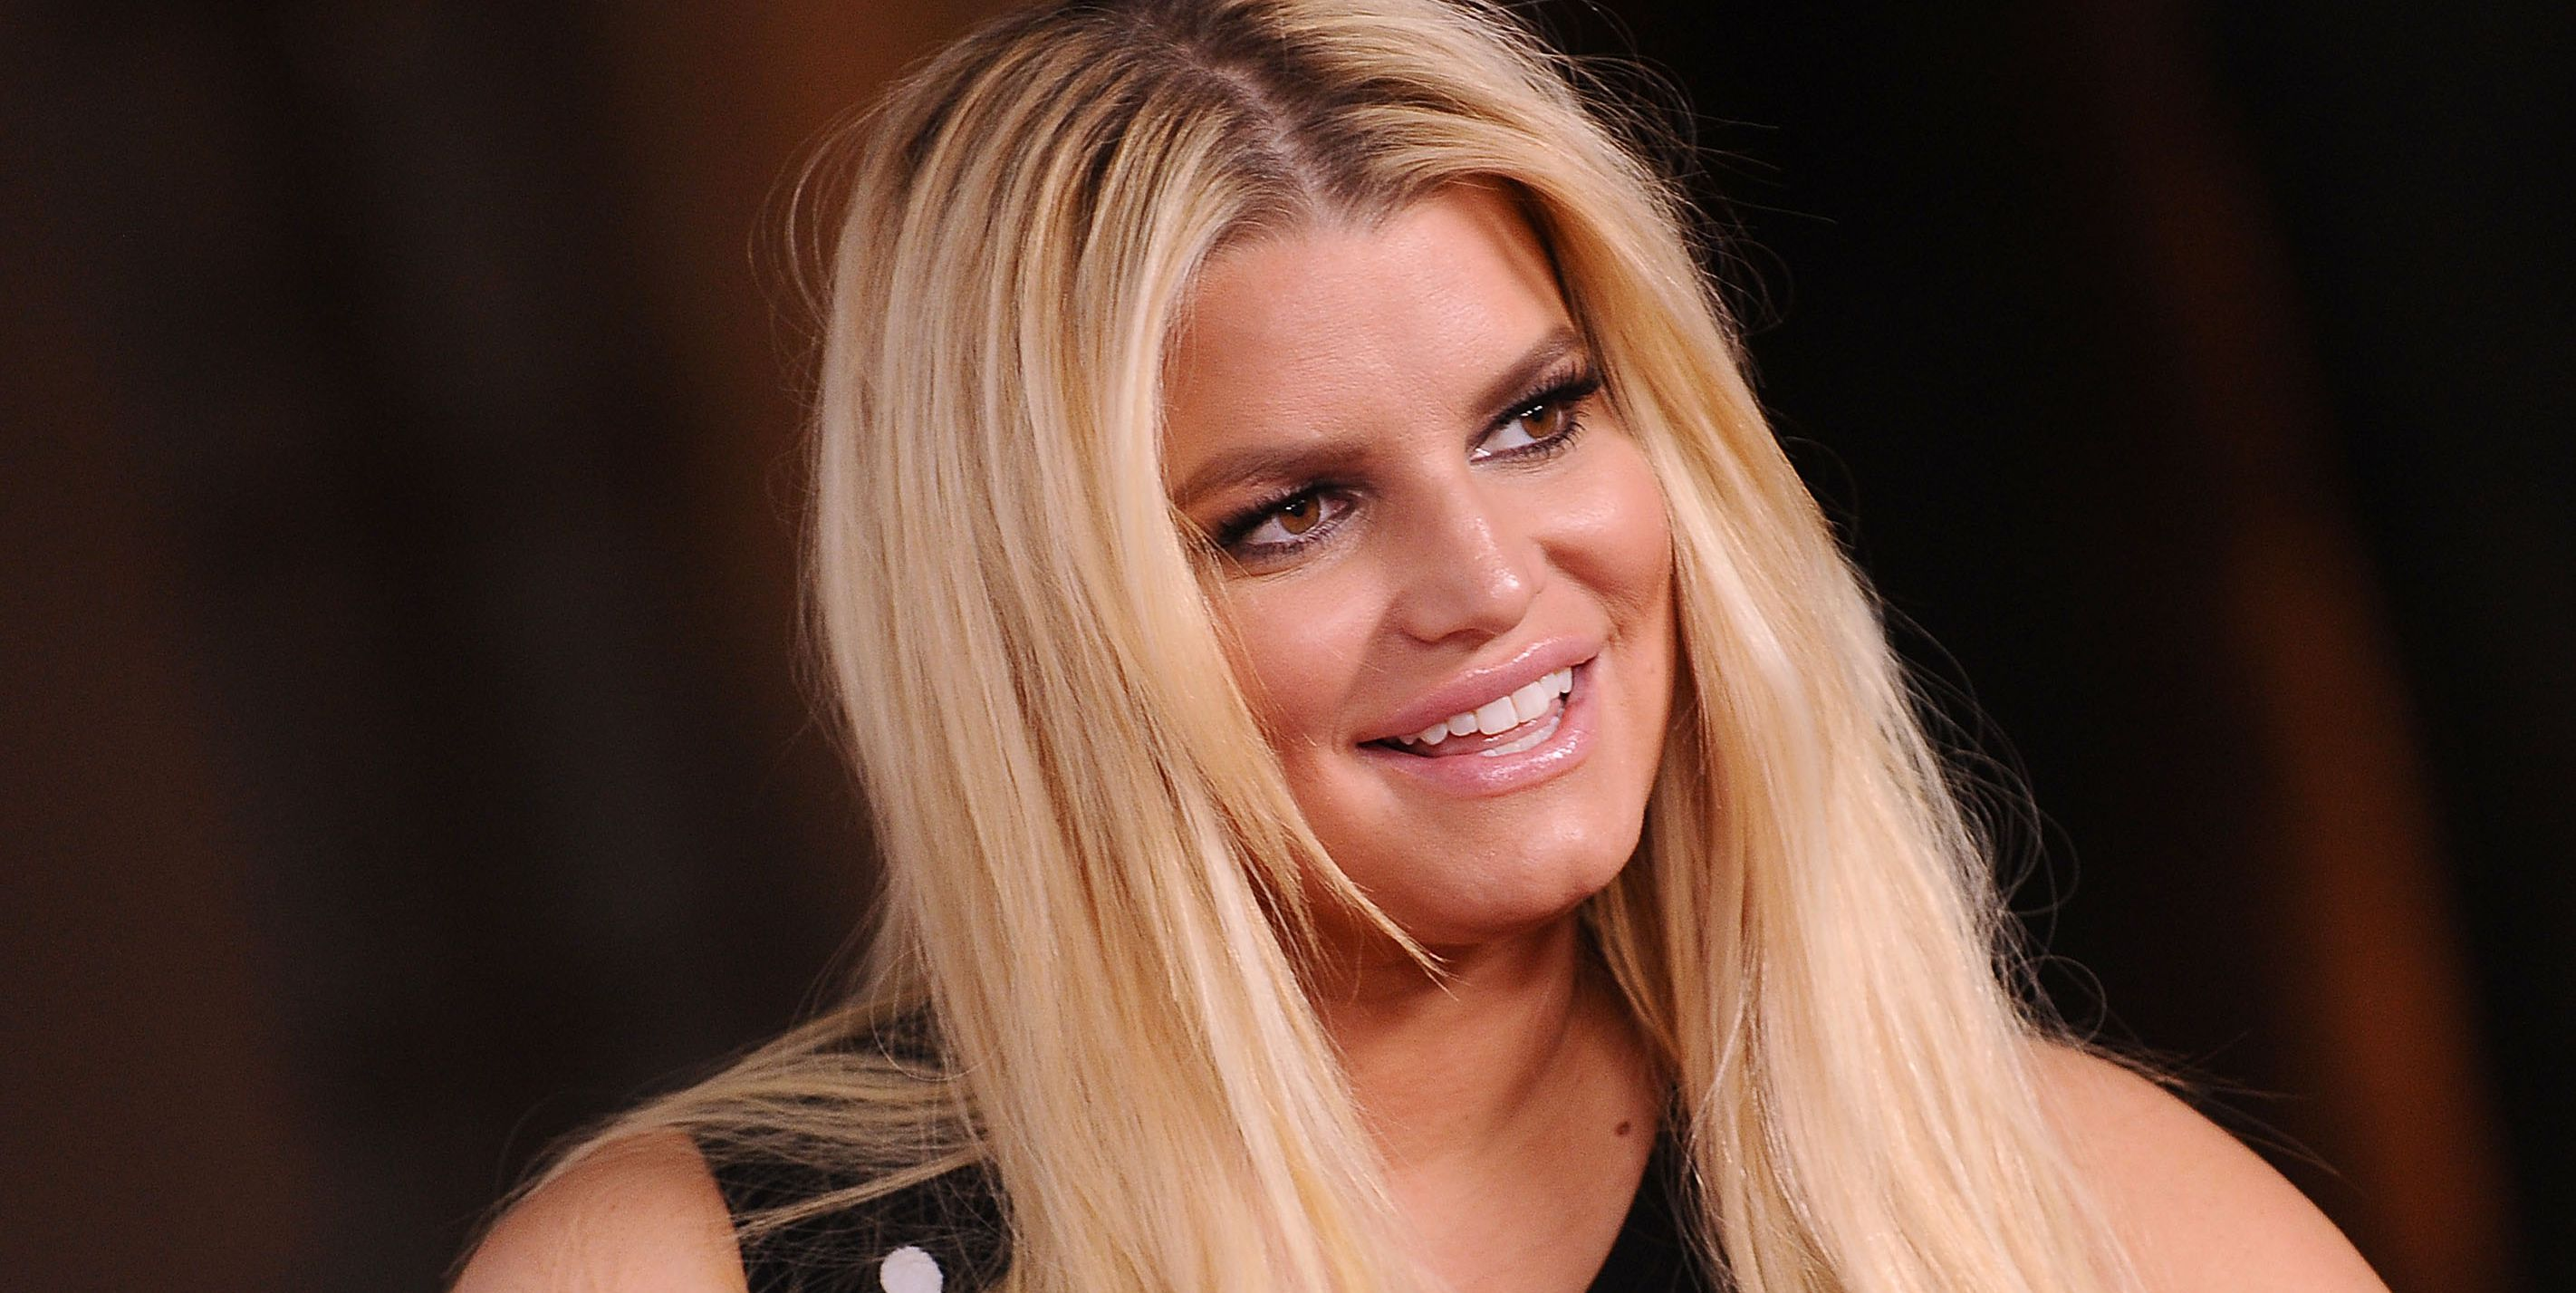 Jessica Simpson Just Posted The Funniest 10-Year Challenge Photo Yet